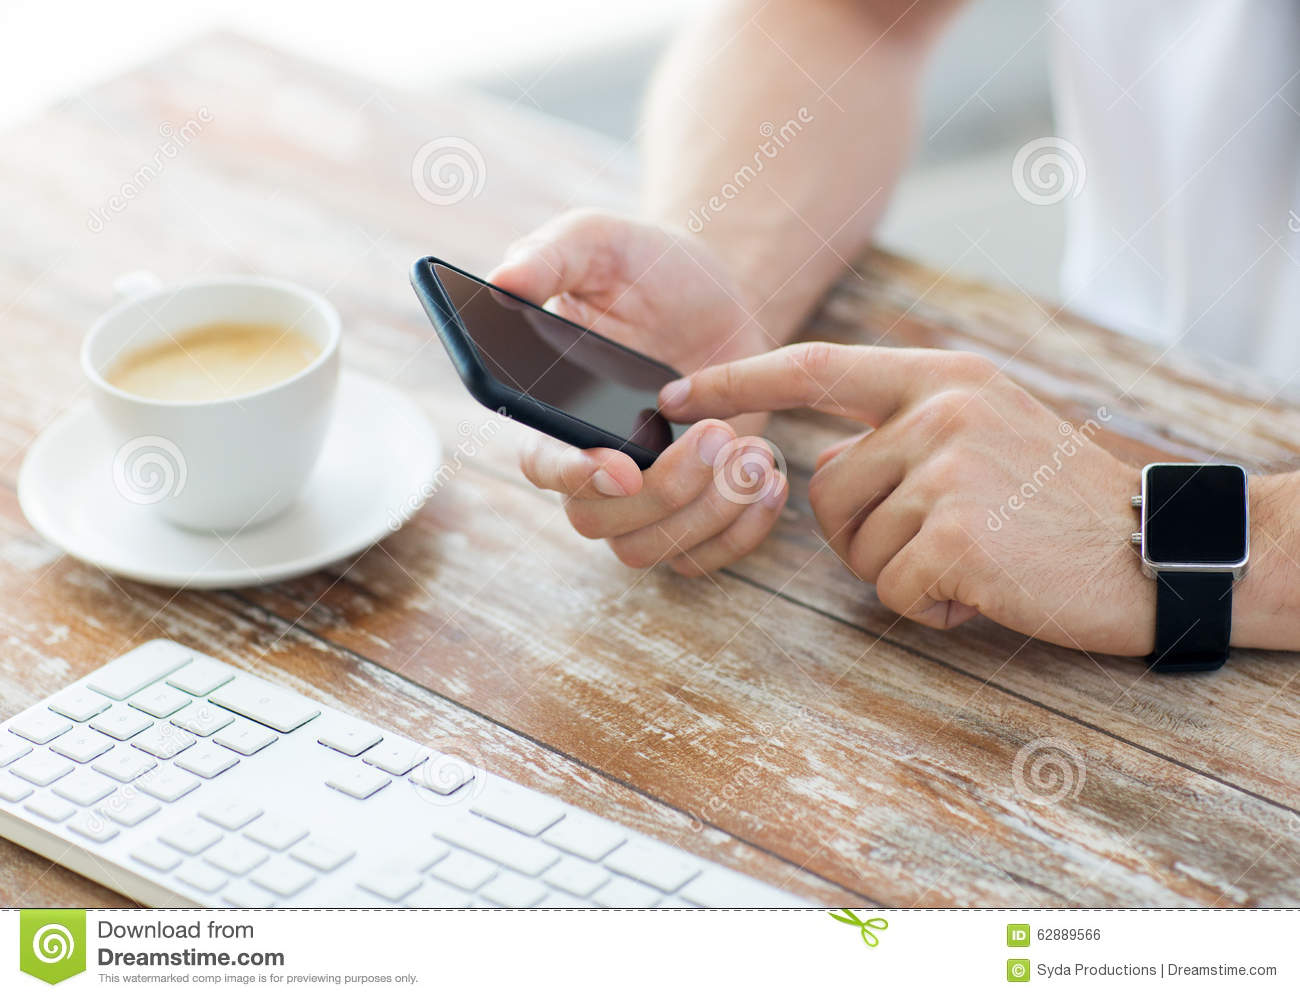 Technology Management Image: Close Up Of Hands With Smart Phone And Watch Stock Photo